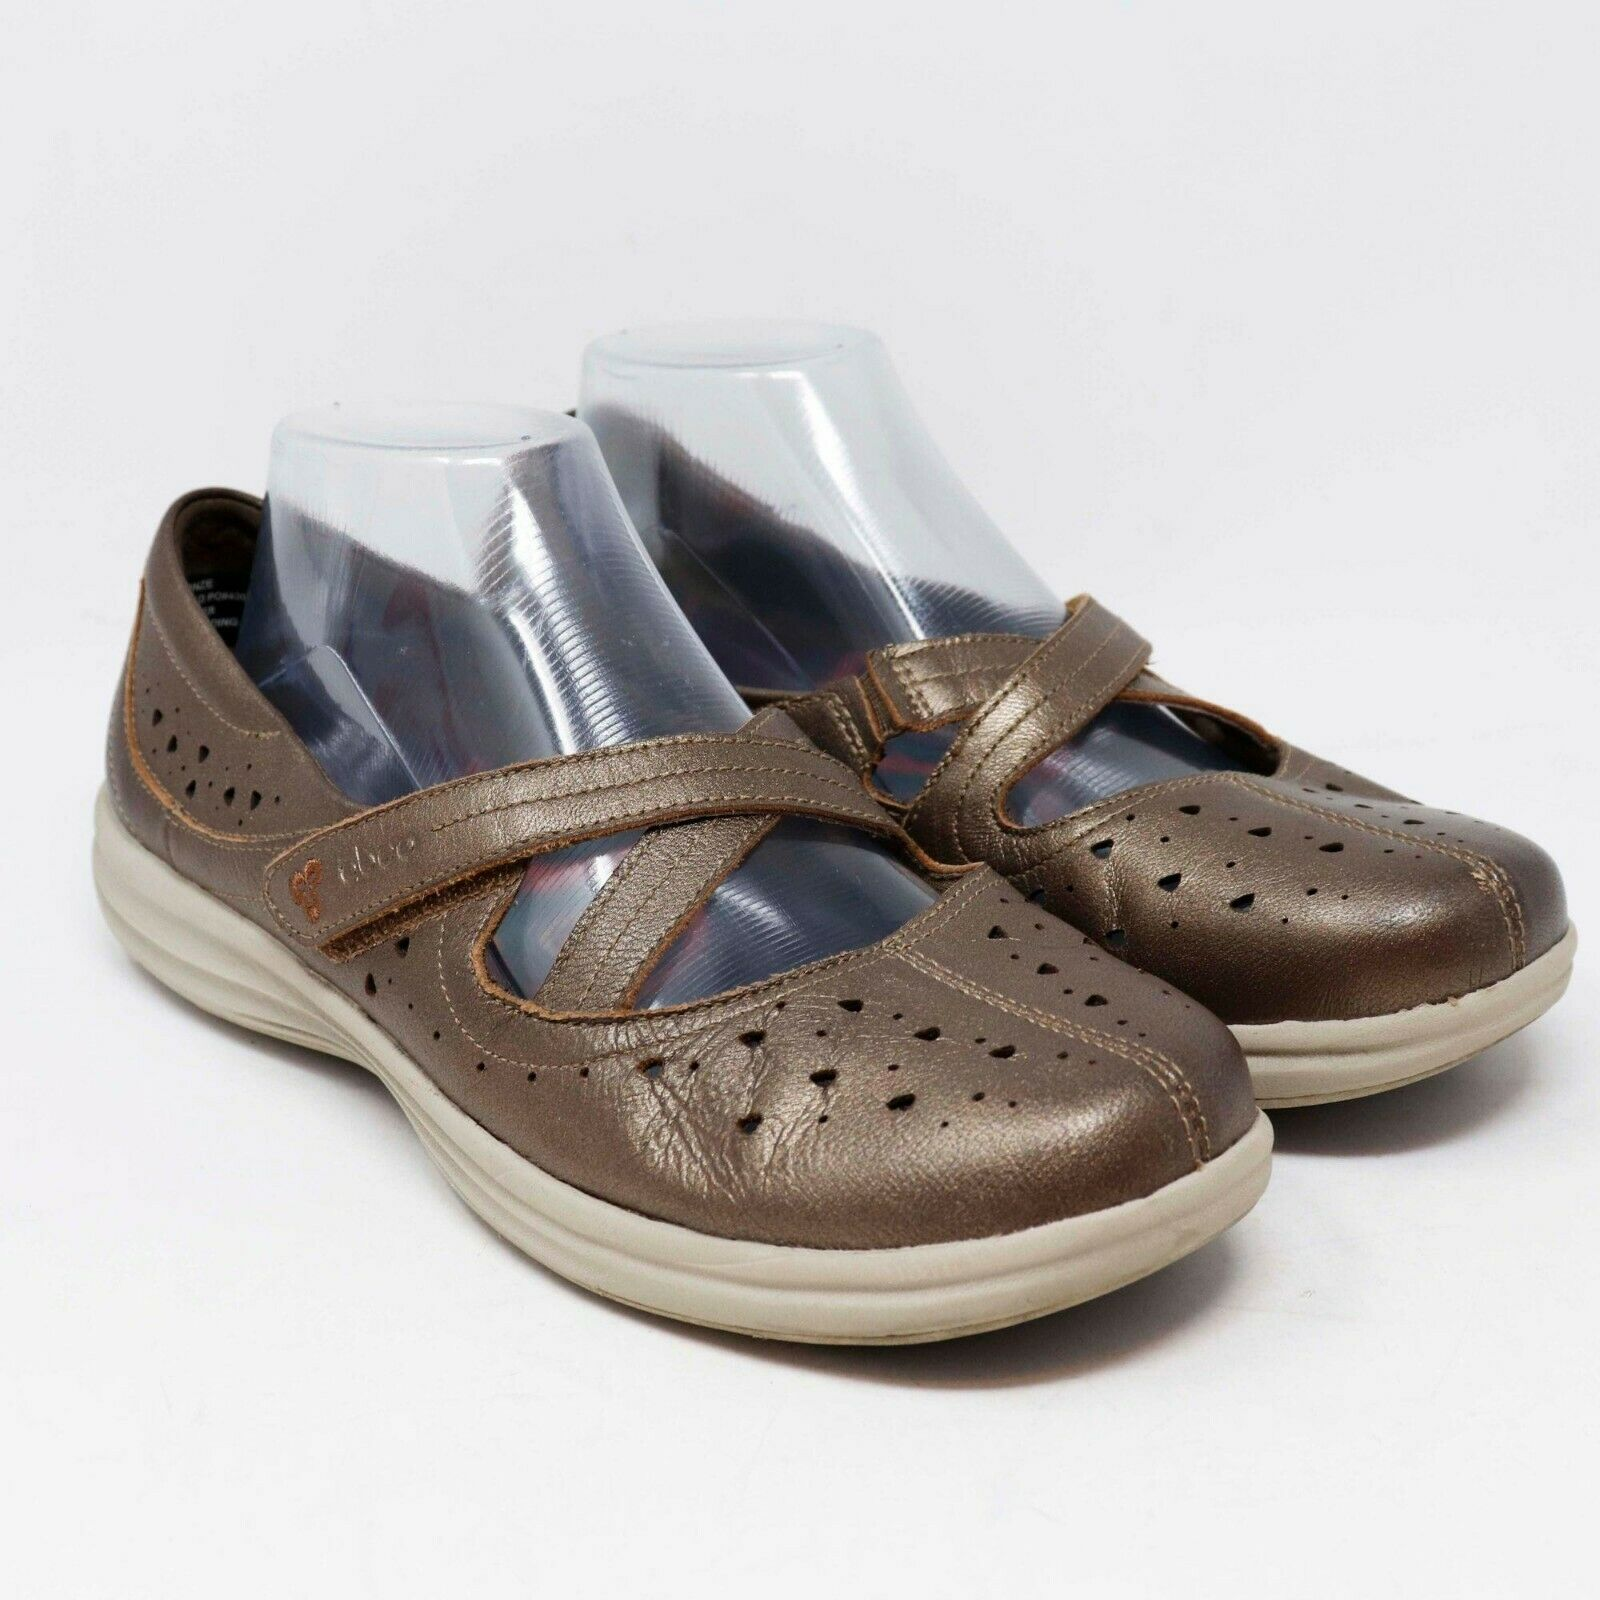 Abeo Aerosystems Womens Bronze Comfort Shoes Size 8.5